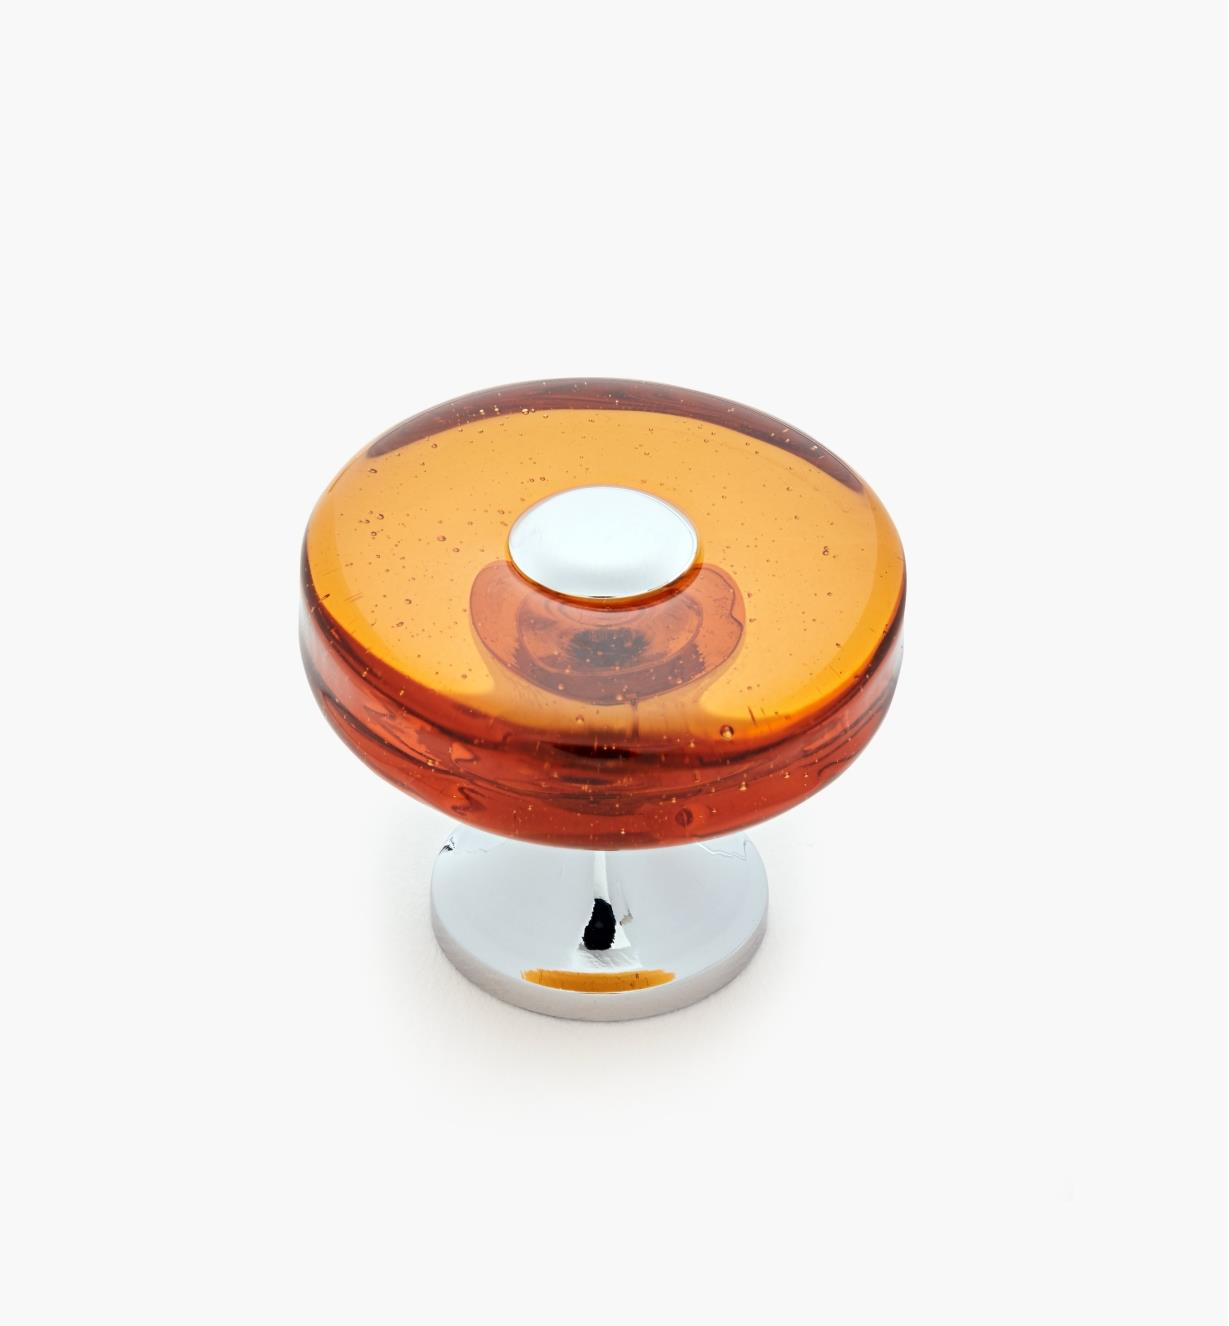 01A3735 - Tinted Glass Disc Knob, Orange